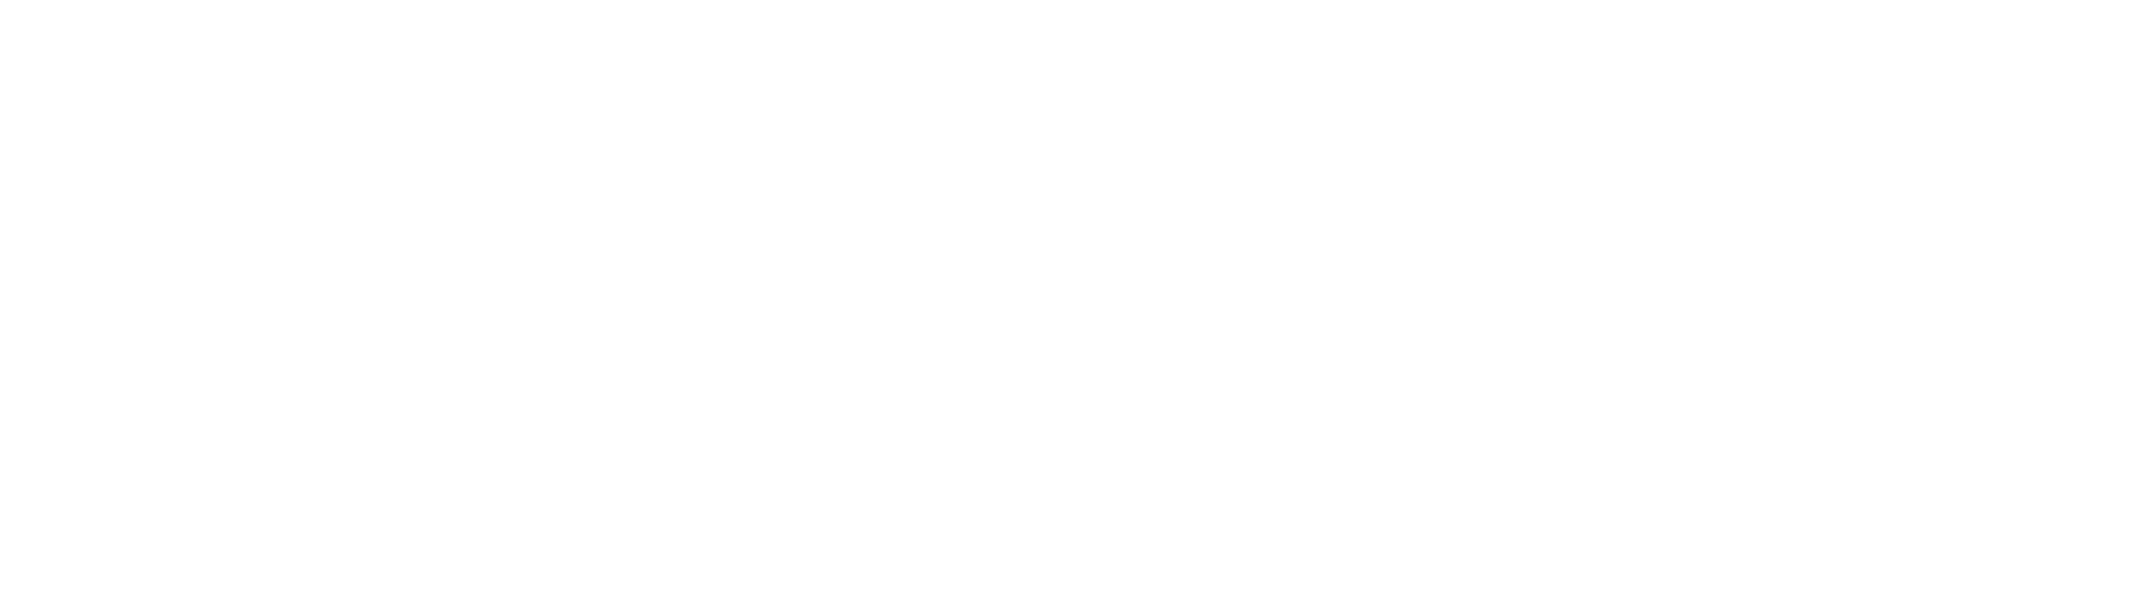 Strata Legal Solutions by Streeterlaw logo